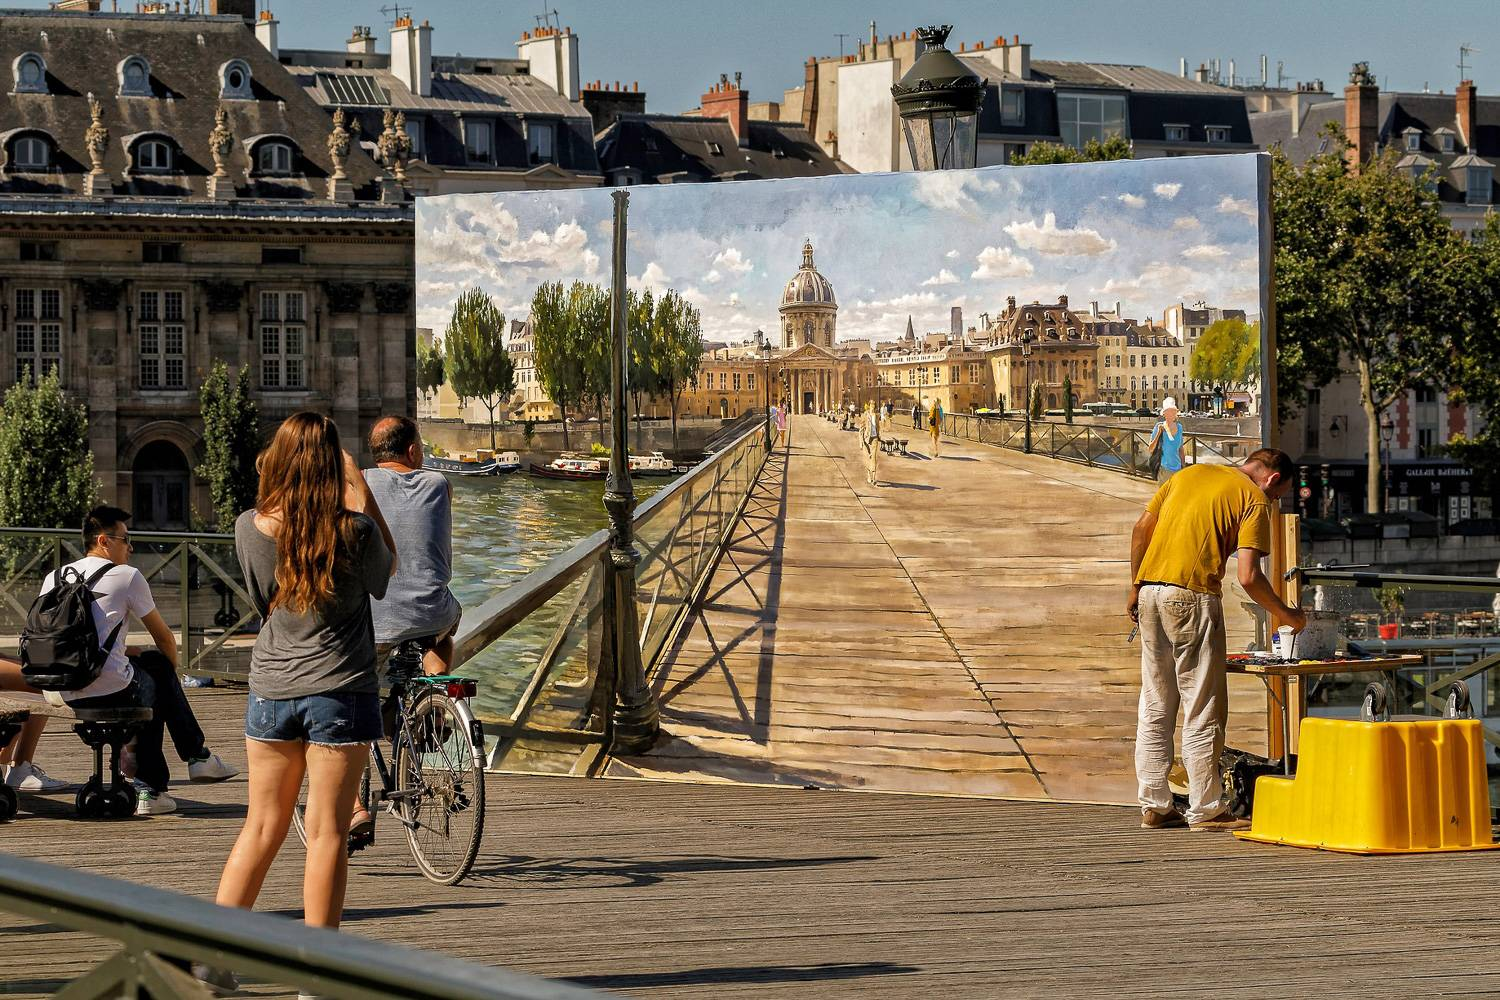 Image of pedestrians and cyclists crossing a bridge over the Seine River while an artist paints the scene.